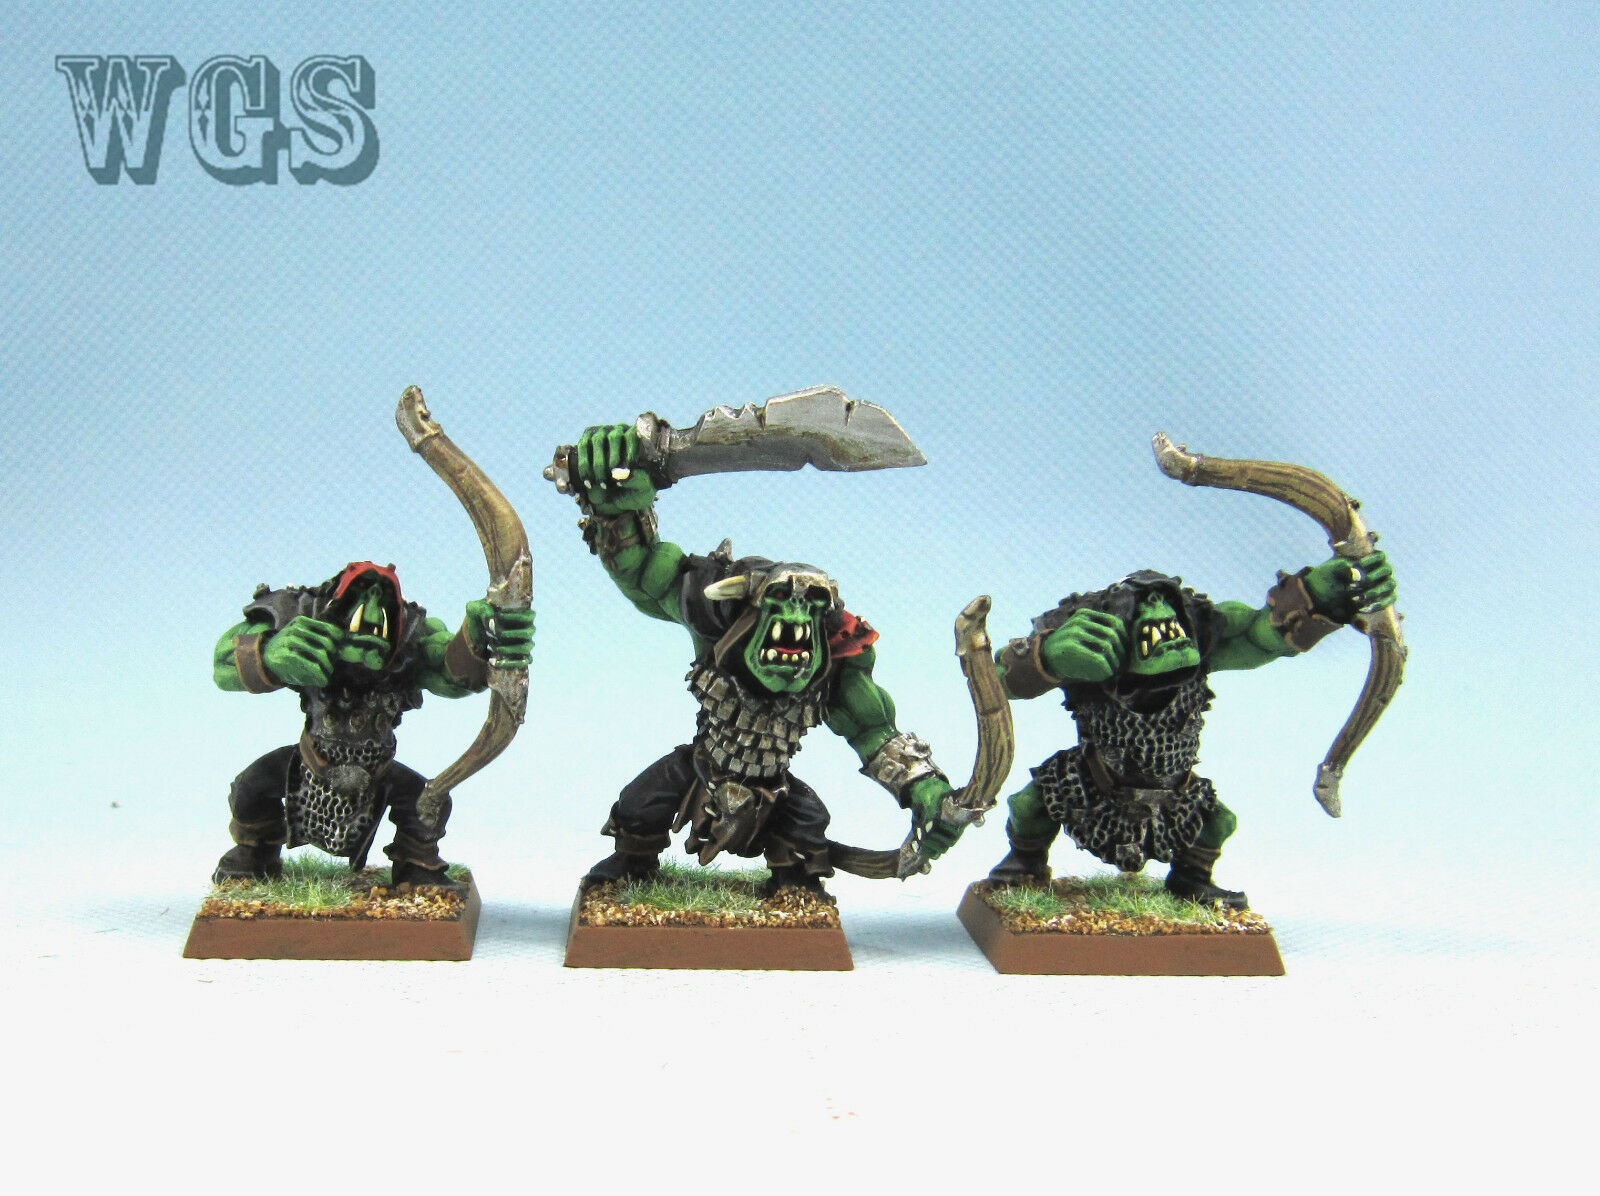 25mm Warhammer Fantasy WGS painted Orcs & Goblins Orc Arrer Boyz OR029